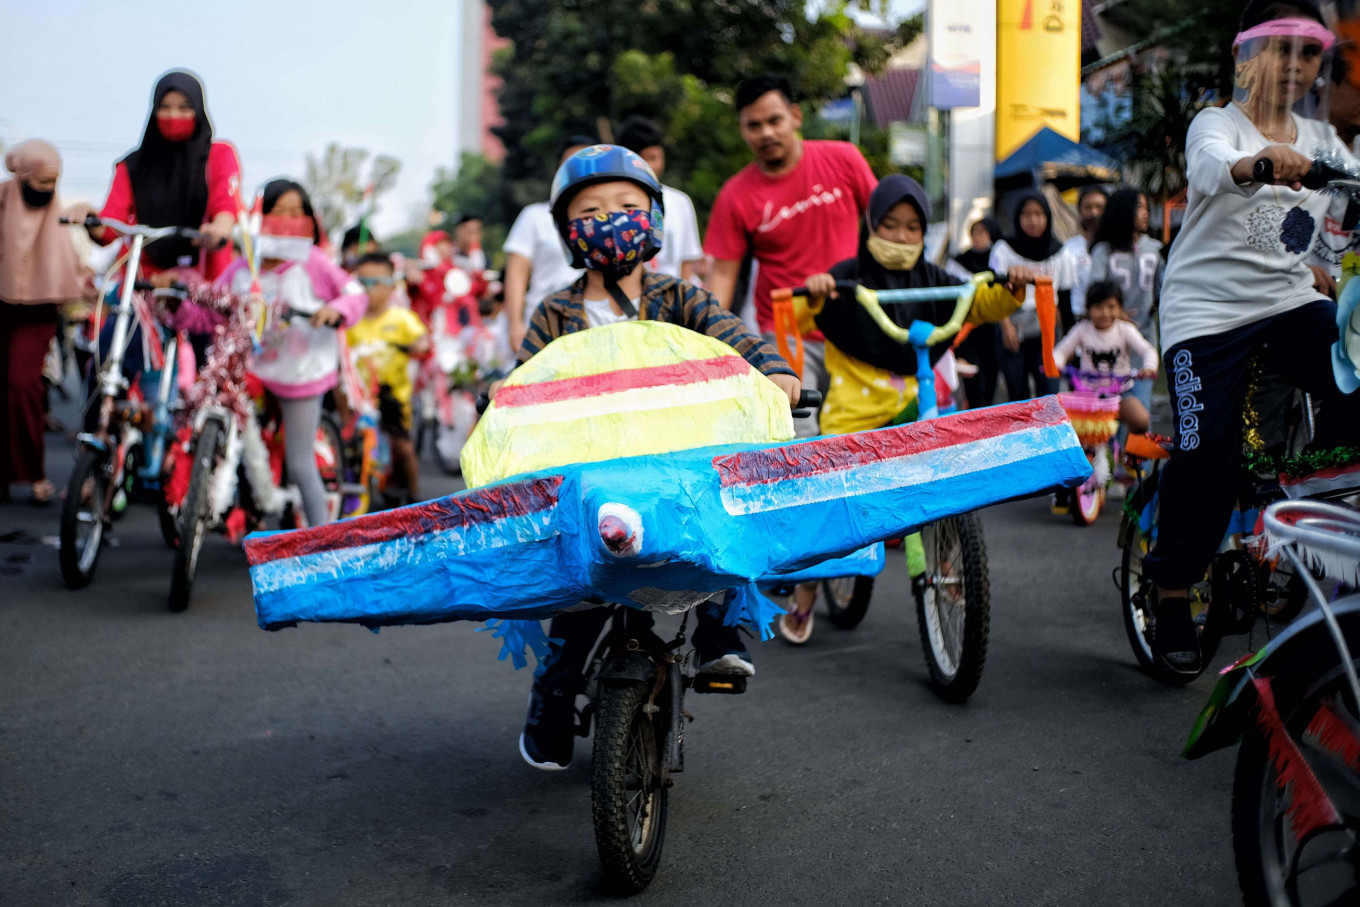 Happy kids: Children take part in a parade by riding their decorated bikes in Bintaro, South Tangerang, Banten, on Monday, August 17, 2020 to commemorate Indonesia's 75th Independence Day. JP/ Seto Wardhana